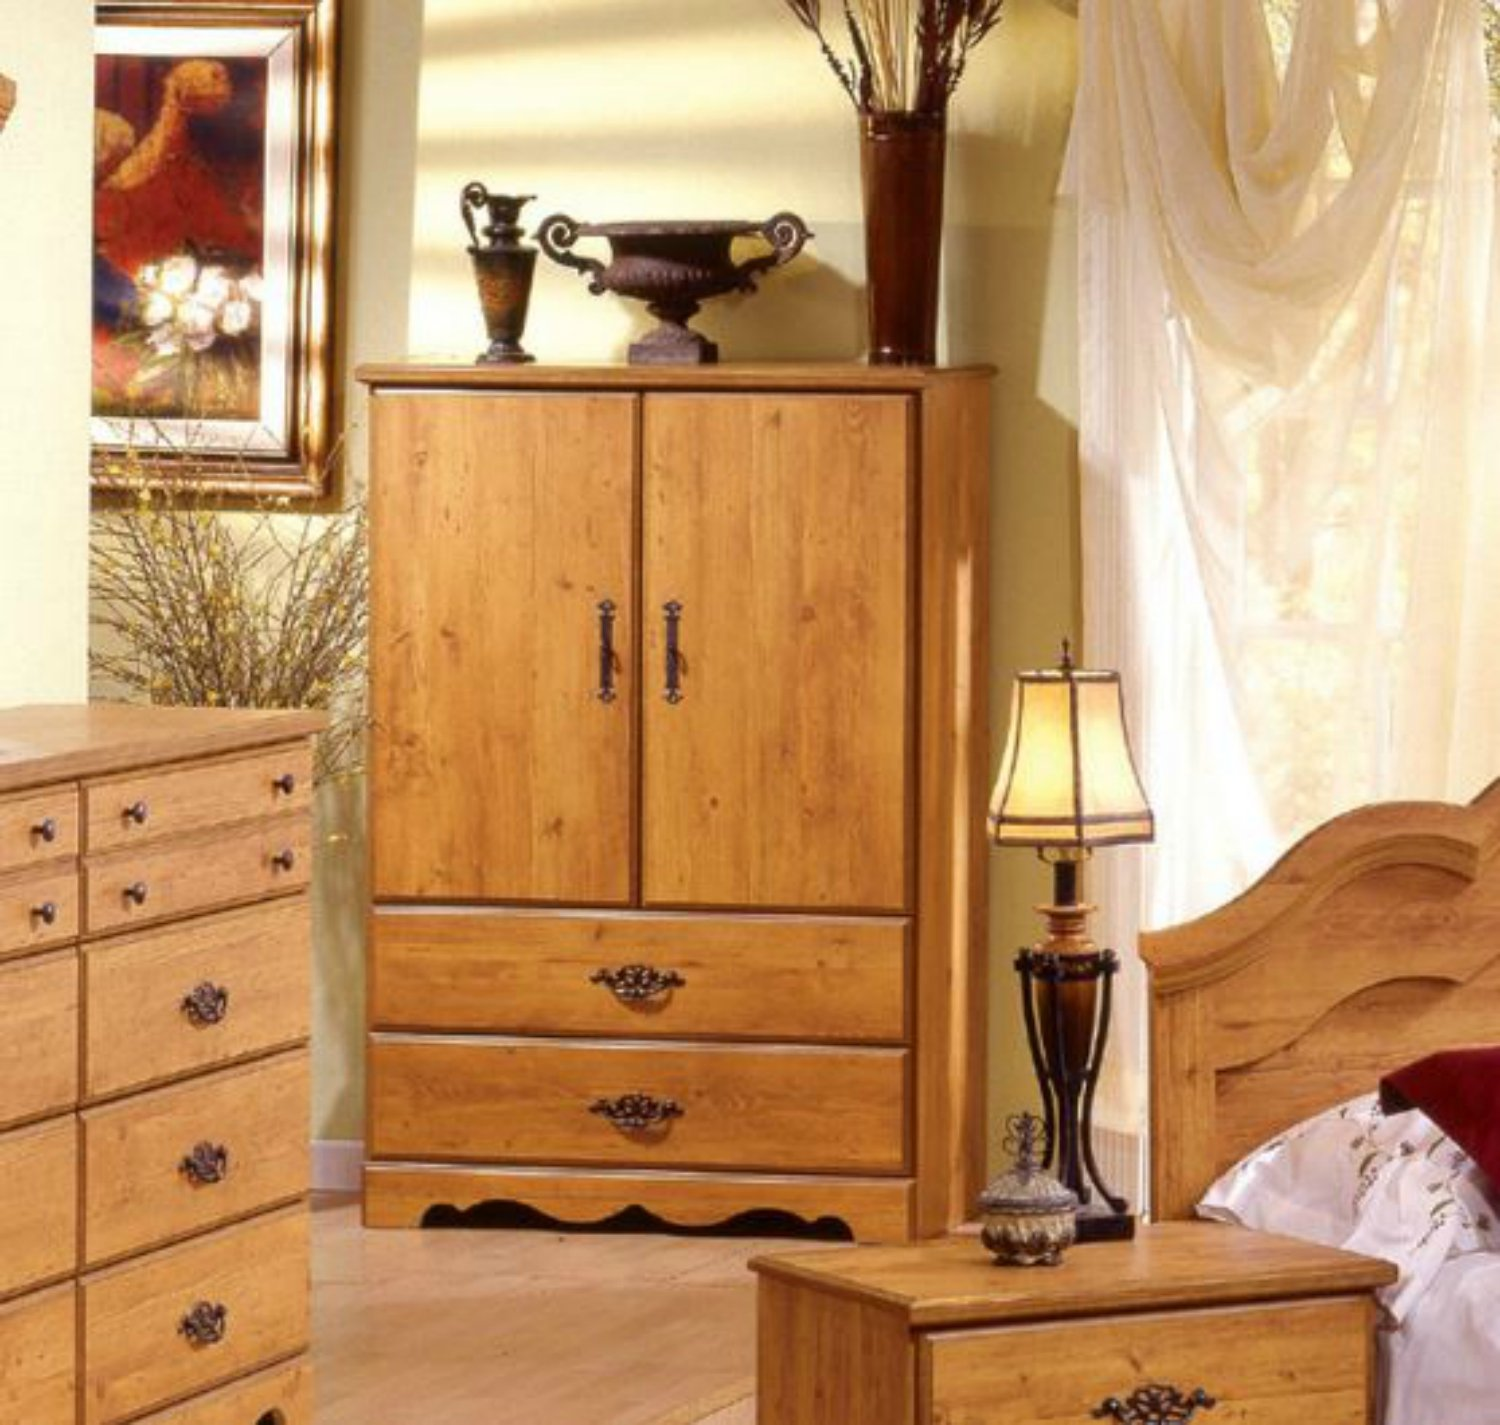 bedroom storage furniture. Amazon com  South Shore Wardrobe Closet Armoire Perfect Bedroom Storage Furniture The Dresser Has 2 Drawers and 3 Shelves This Cabinet Is Made of